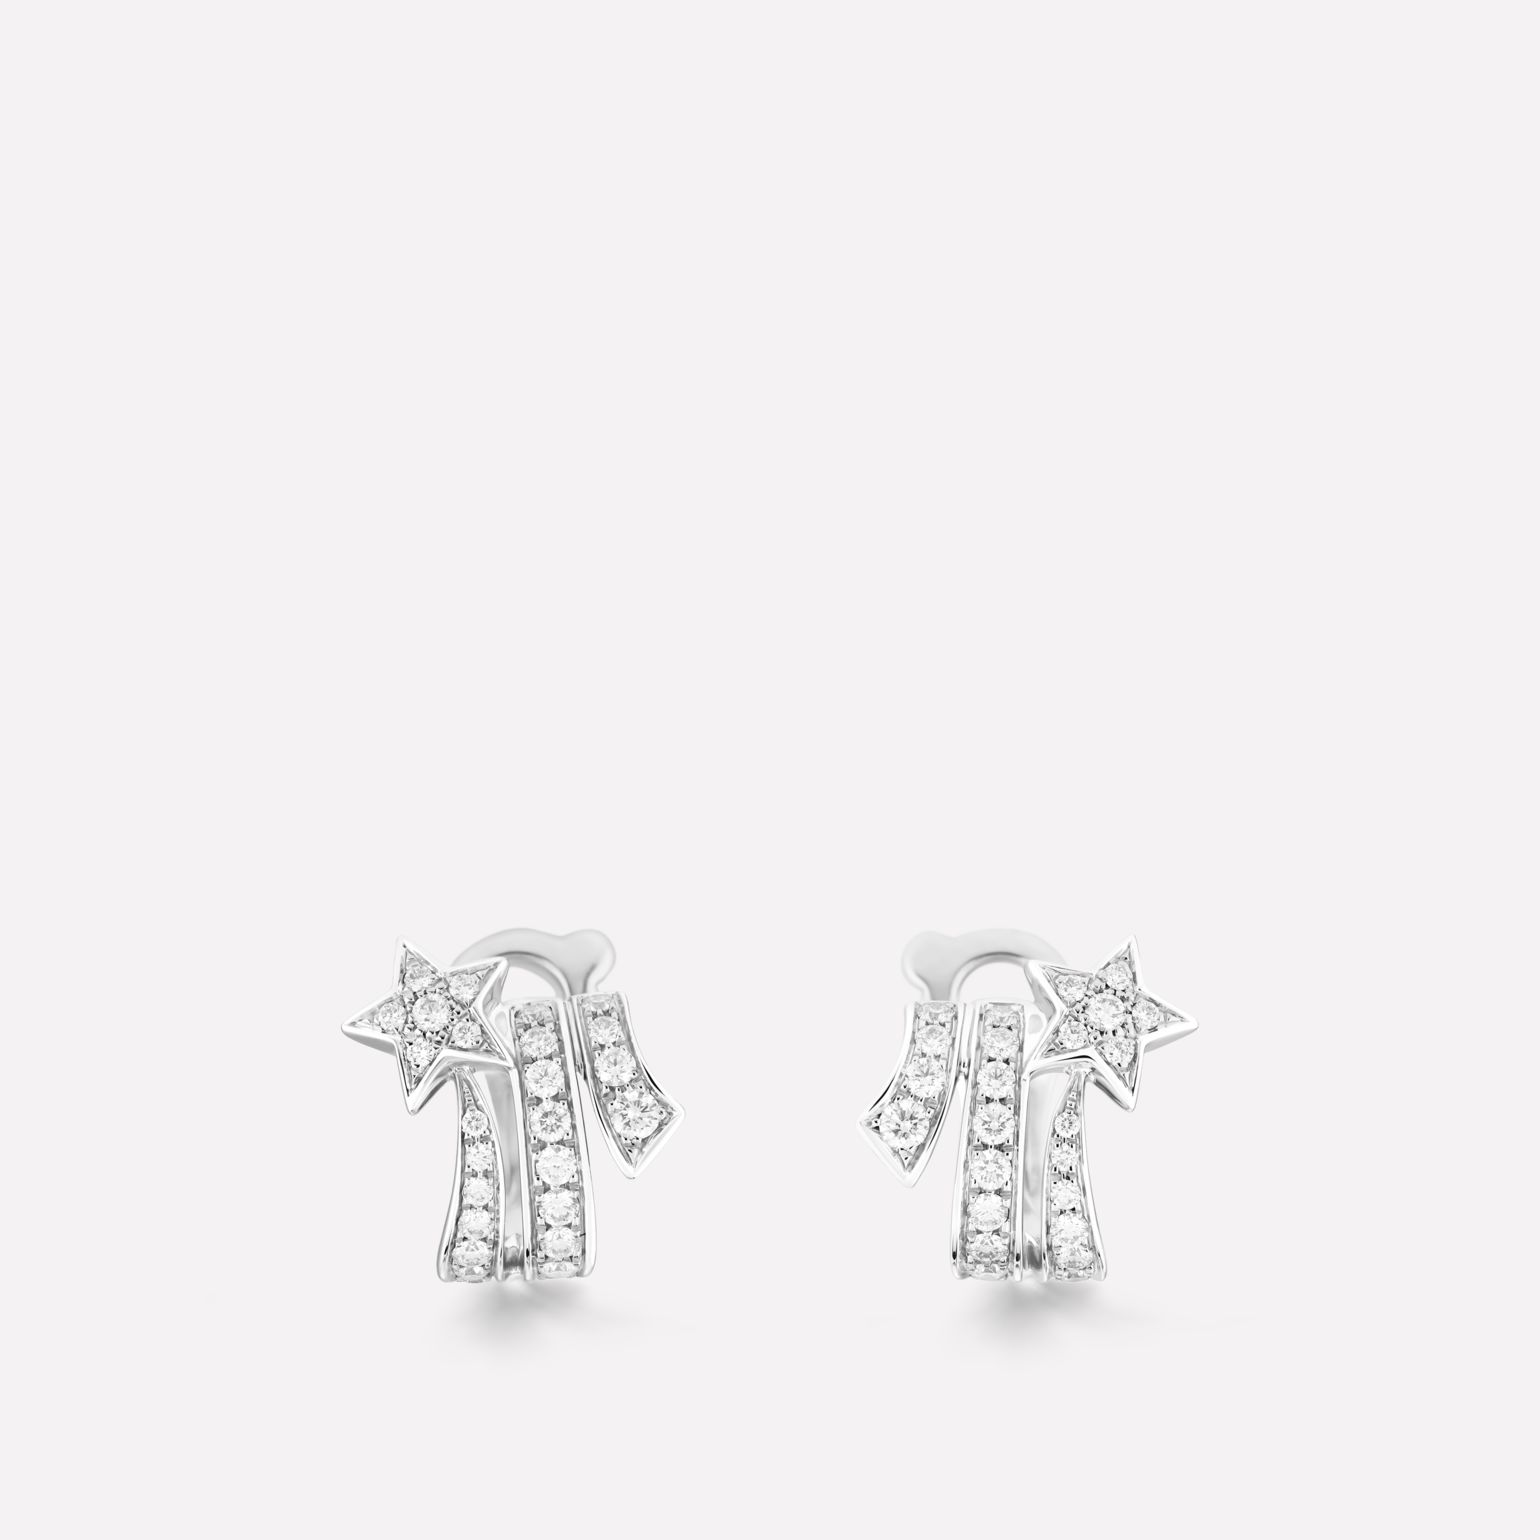 Étoile Filante earrings 18K white gold, diamonds